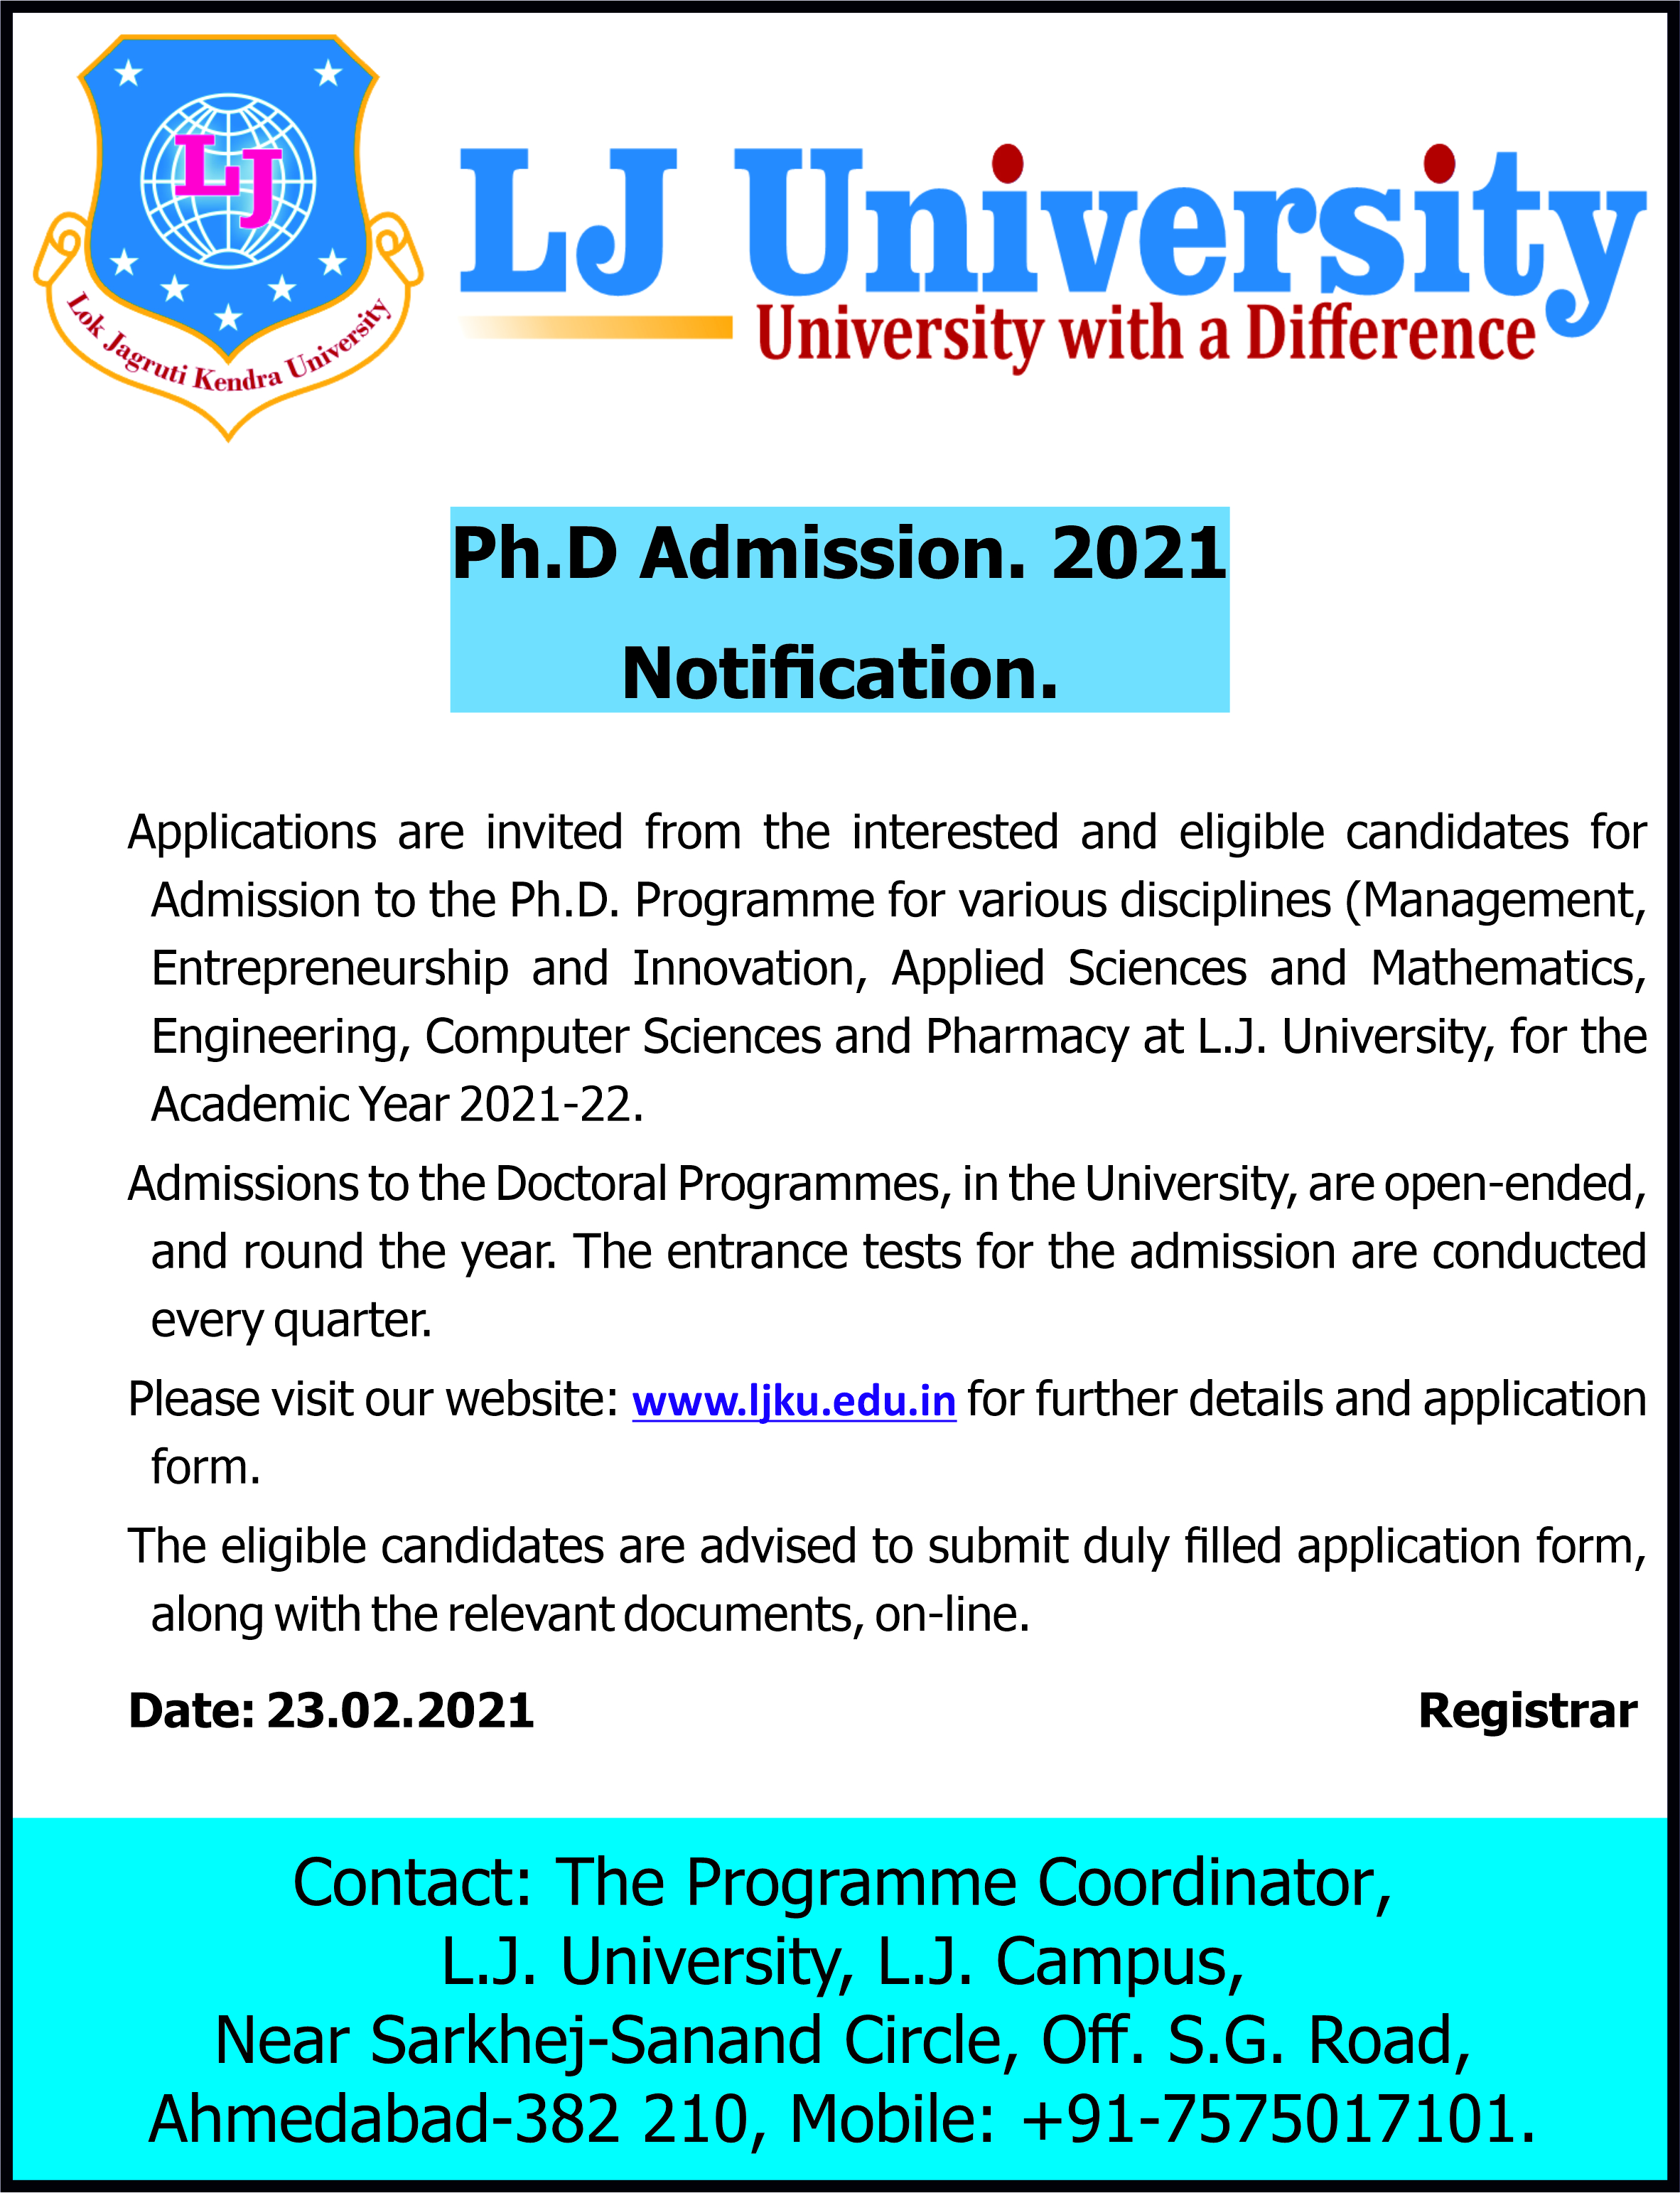 Ph.D. Notification